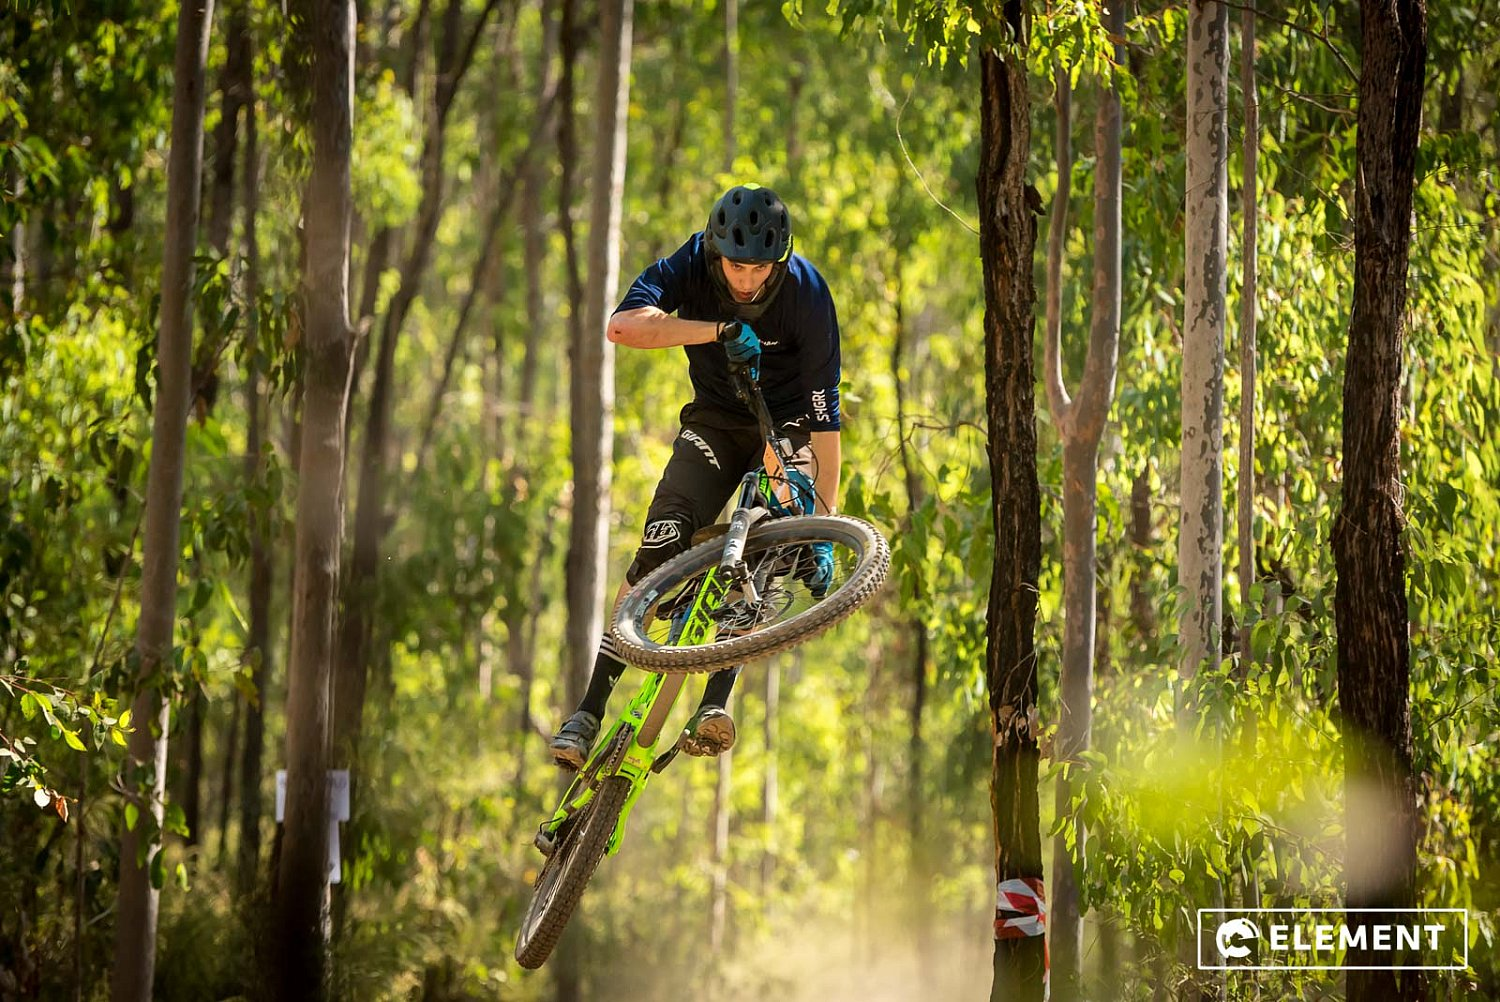 MTB Ride and Shoot Photography Workshop (1st March 2020) | LR1_2930_Lachlan_Ryan_05-08-2018.jpg